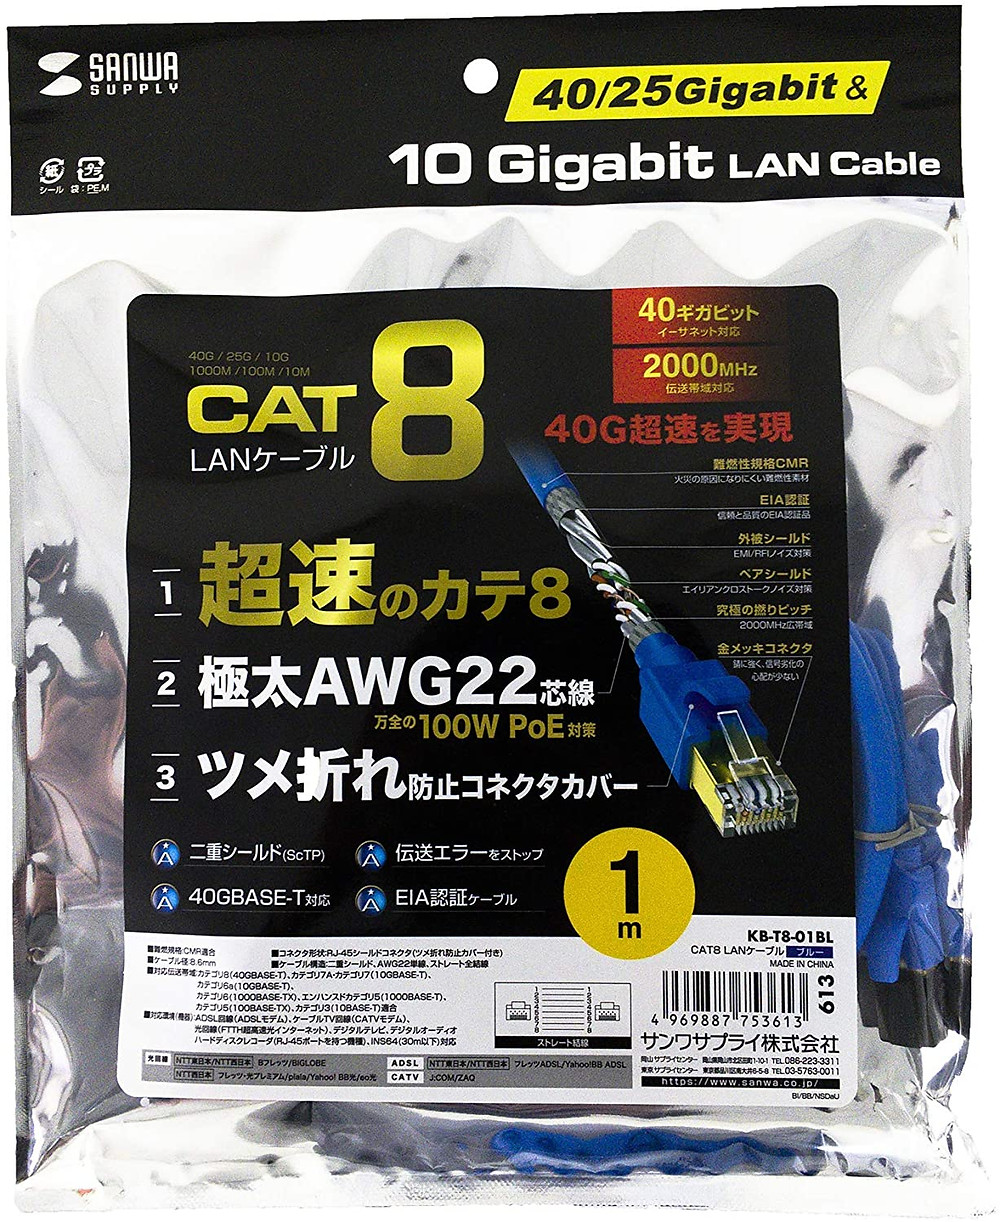 Top 3 fastest Ethernet LAN cable for PC gaming